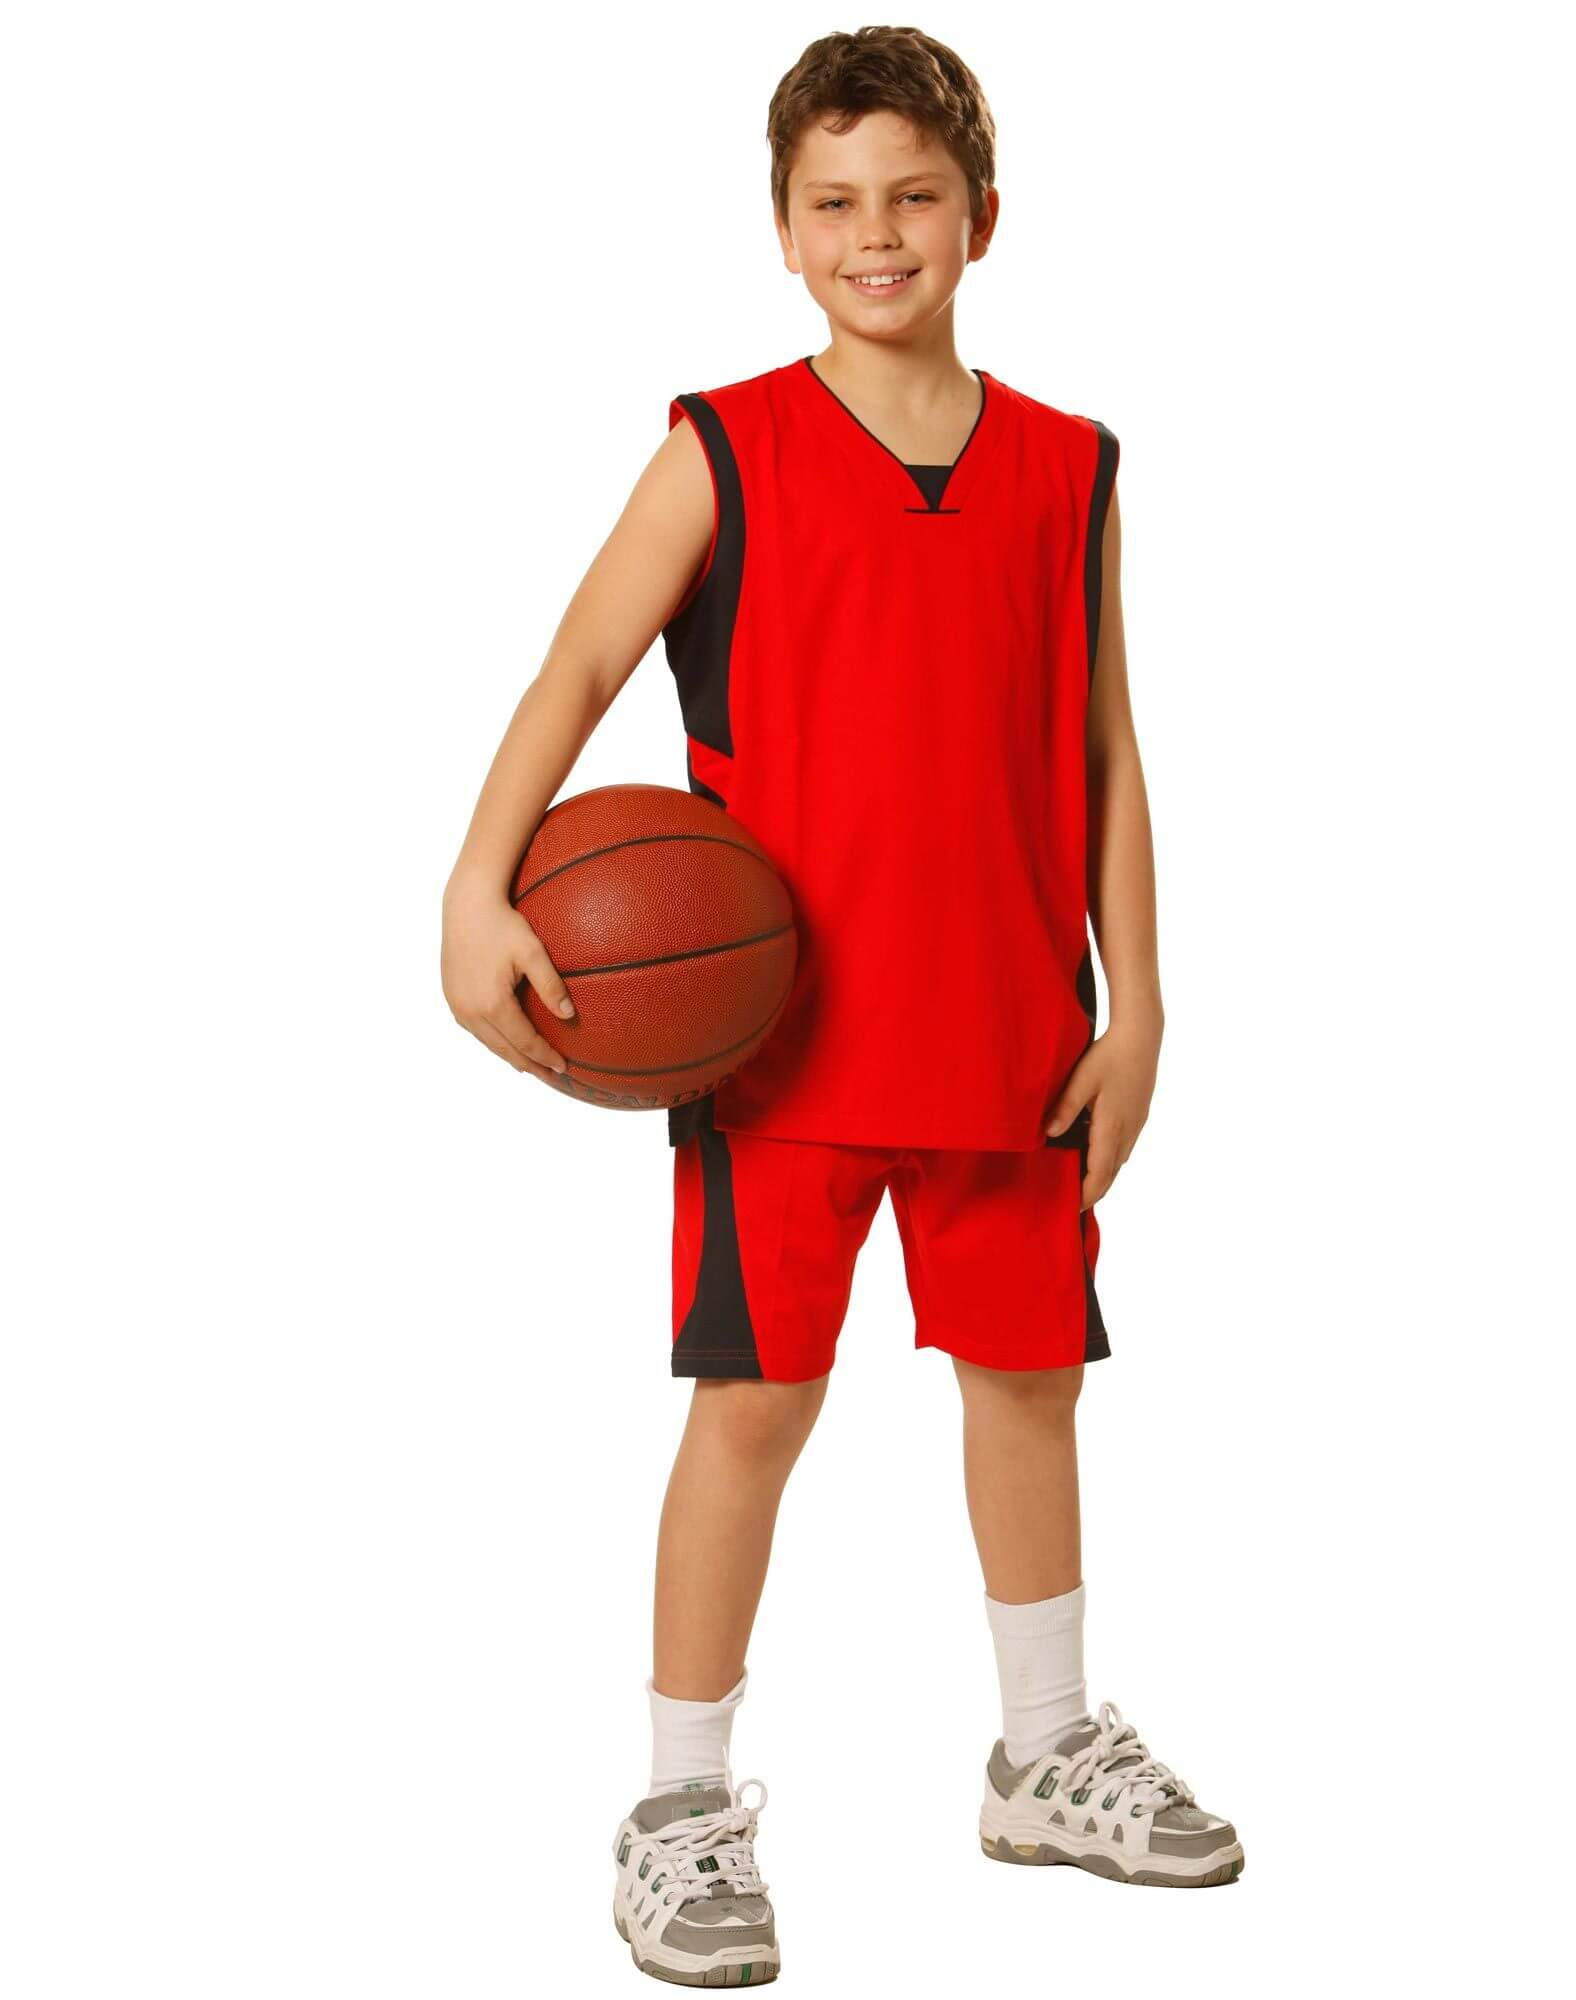 Kids Basketball Manufacturers in Argentina